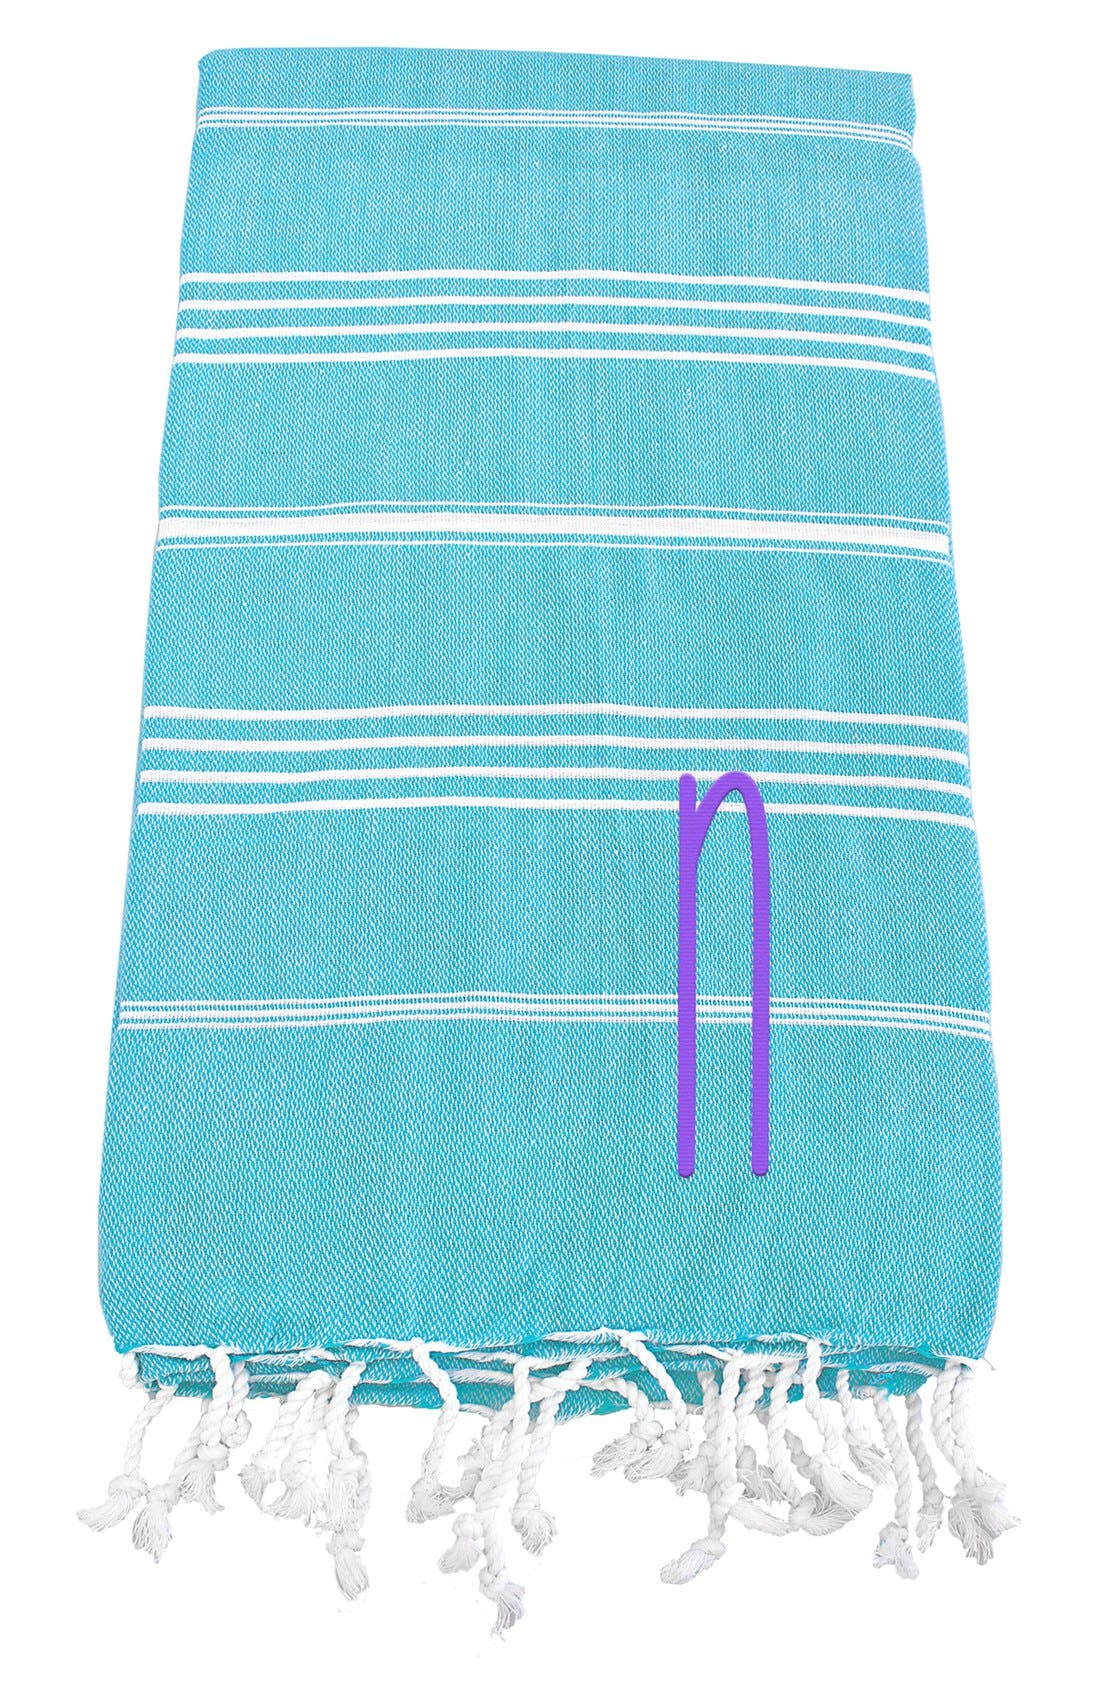 Monogram Turkish Cotton Towel,                             Main thumbnail 1, color,                             454